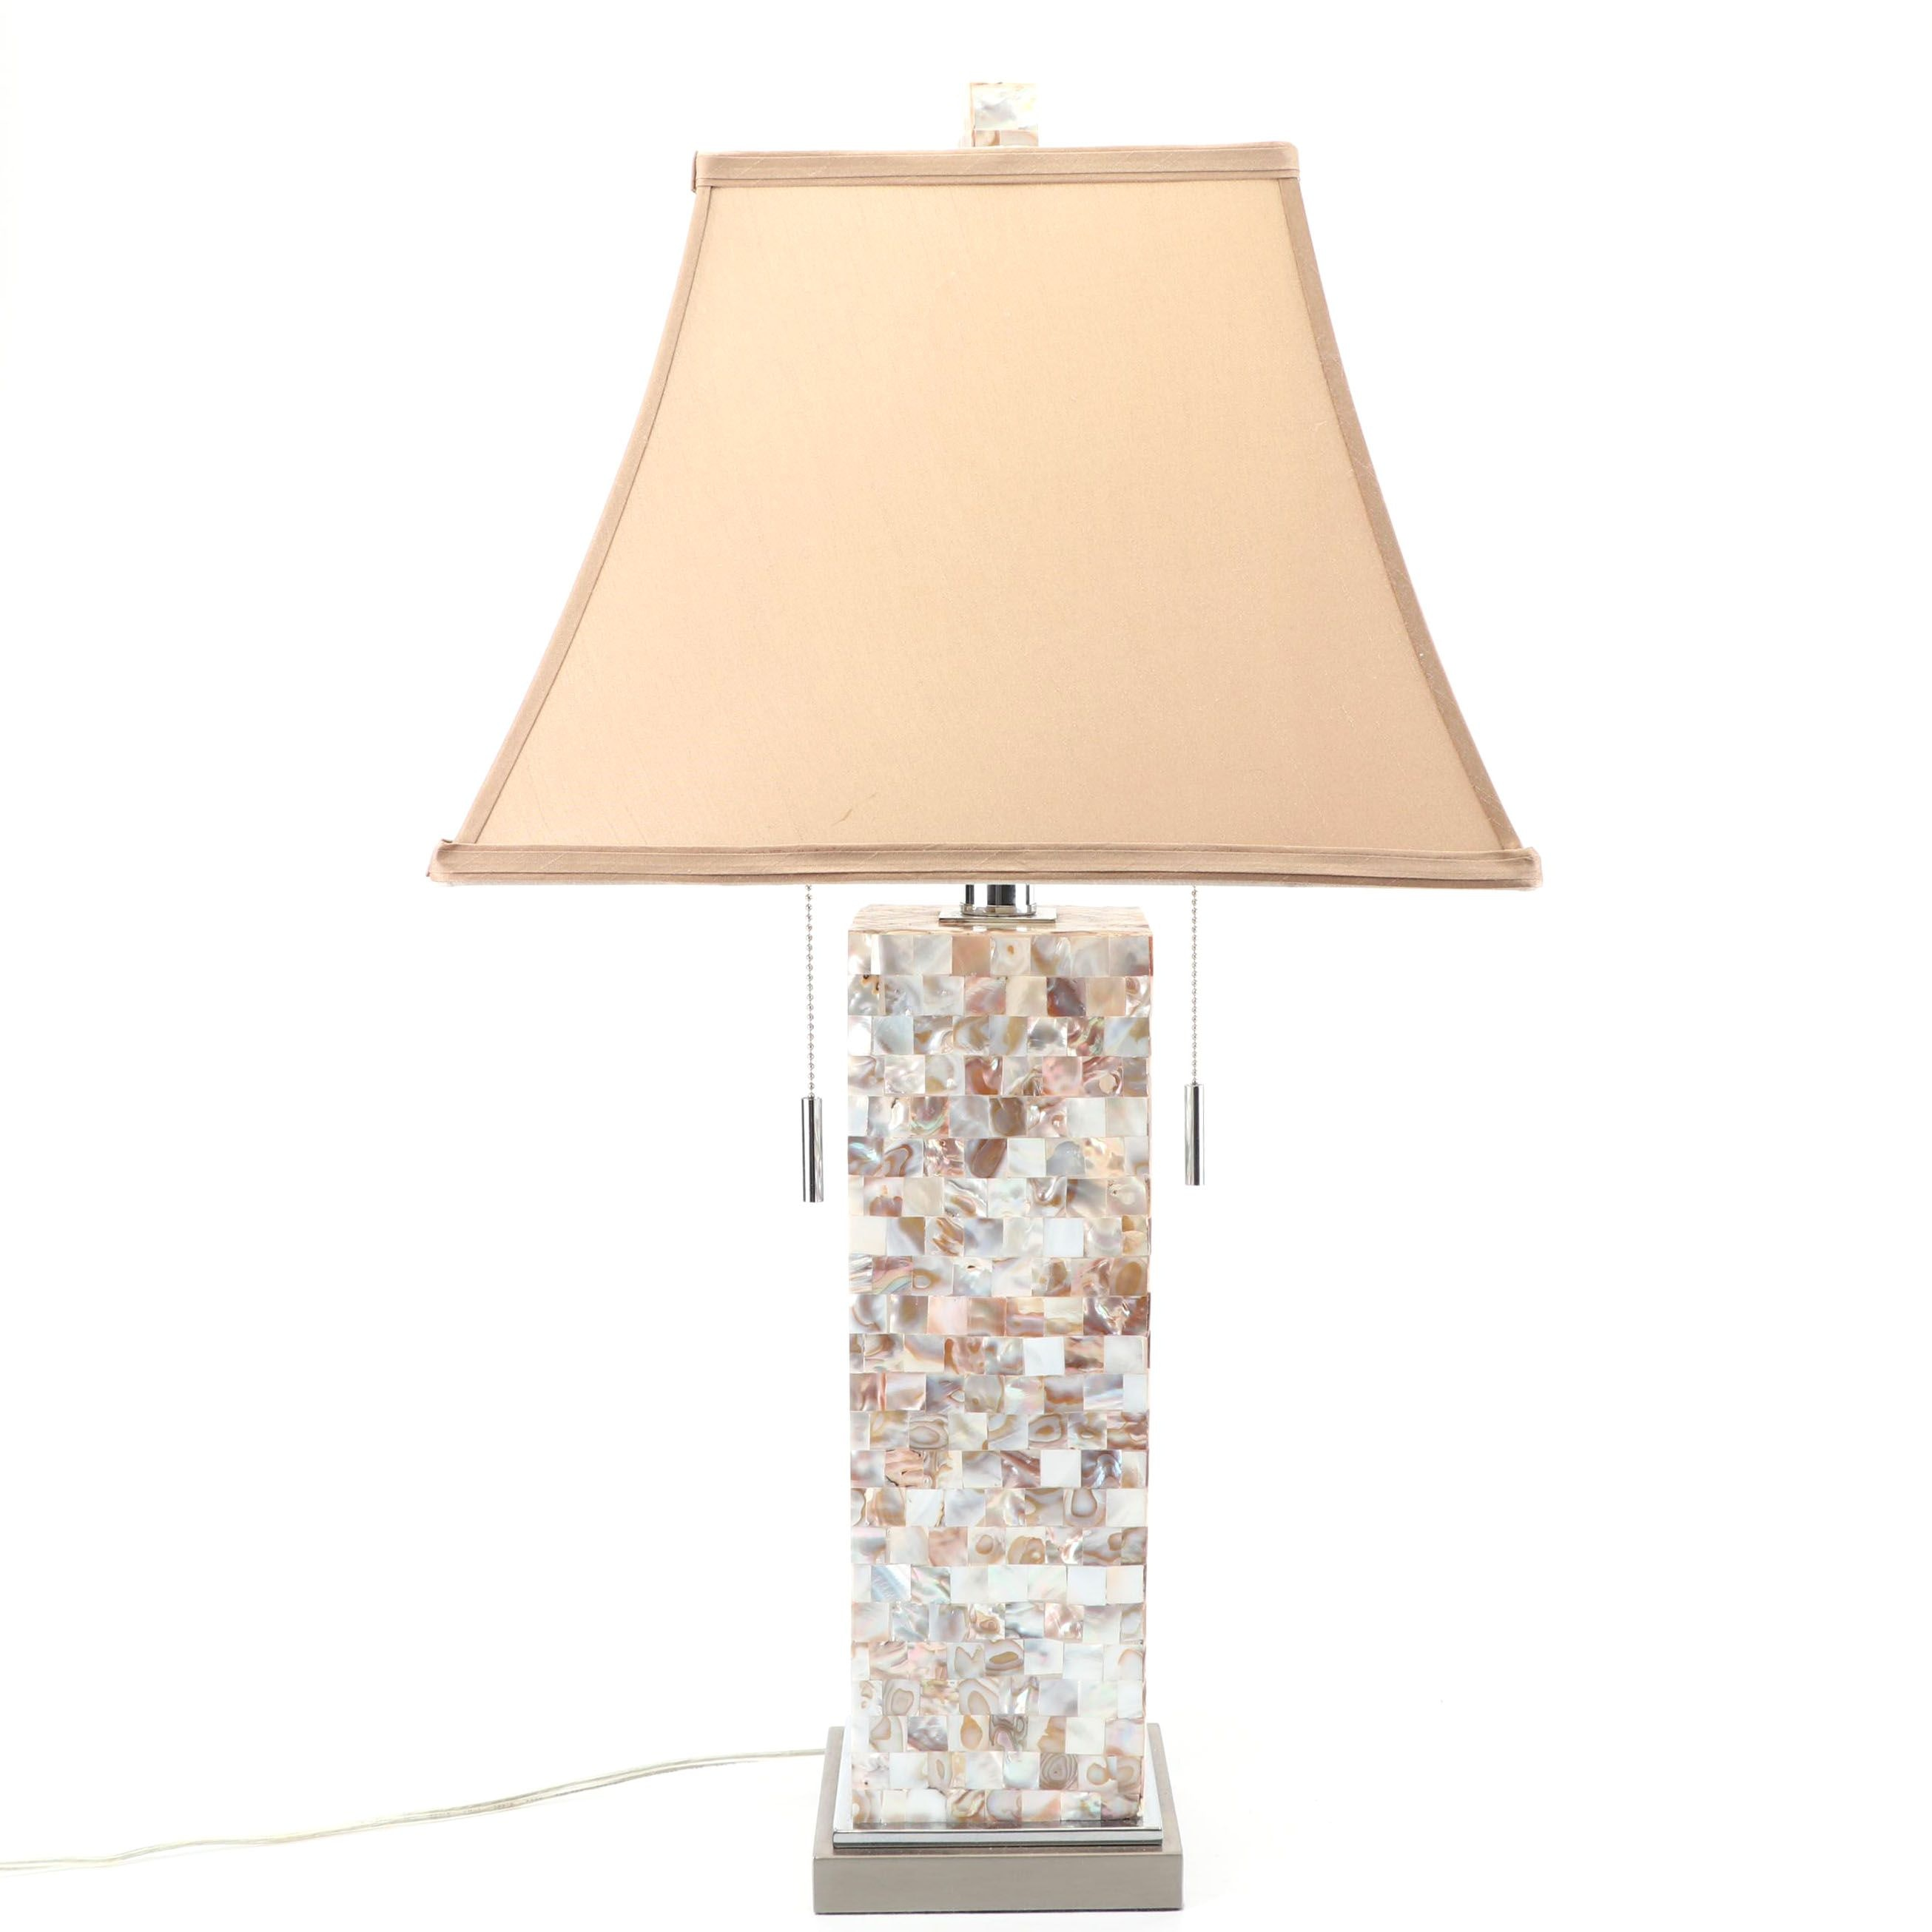 Mother-of-Pearl Table Lamp by Pier 1